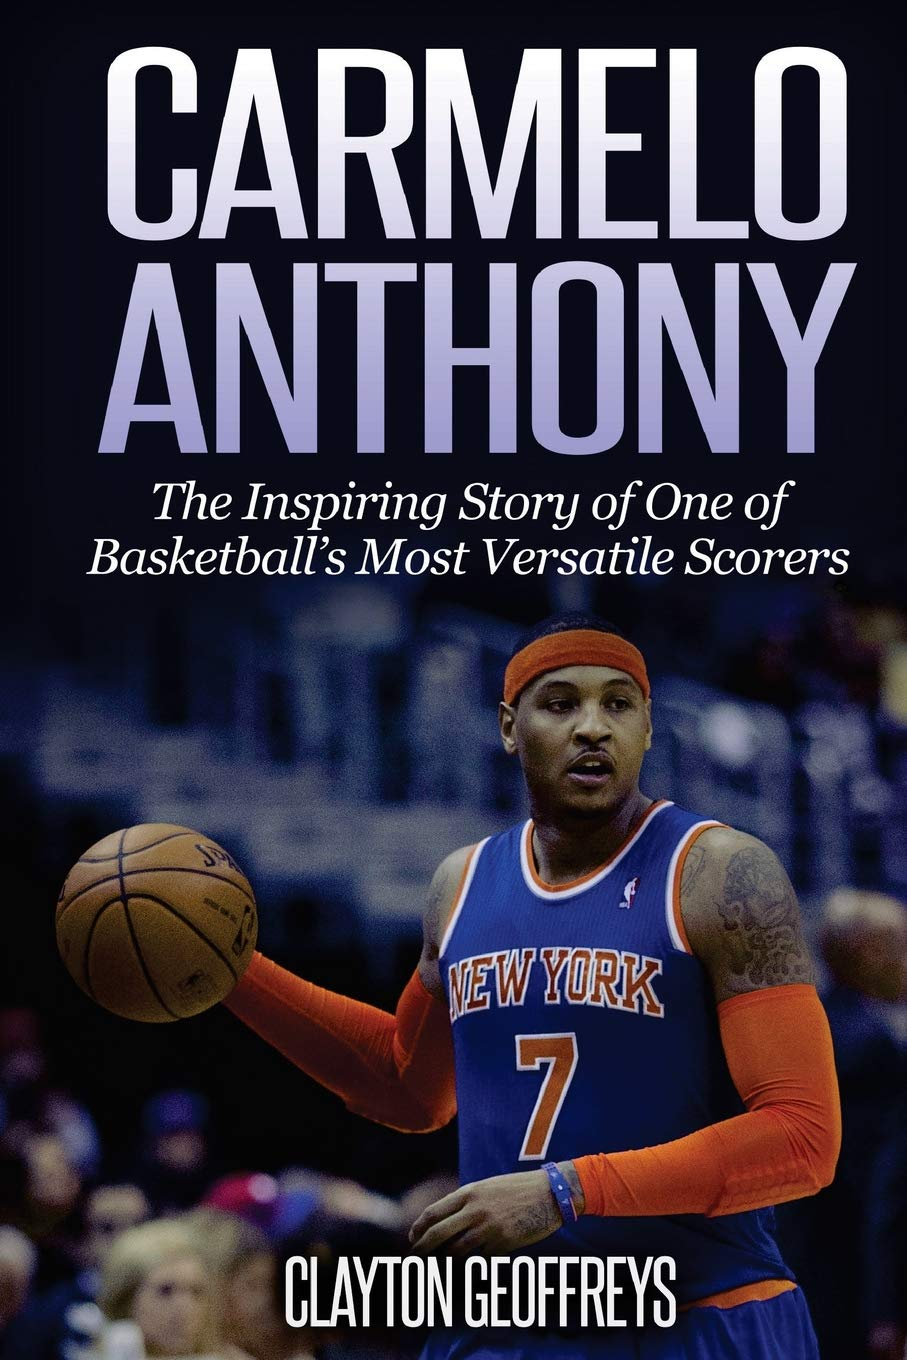 Image OfCarmelo Anthony: The Inspiring Story Of One Of Basketball's Most Versatile Scorers (Basketball Biography Books)